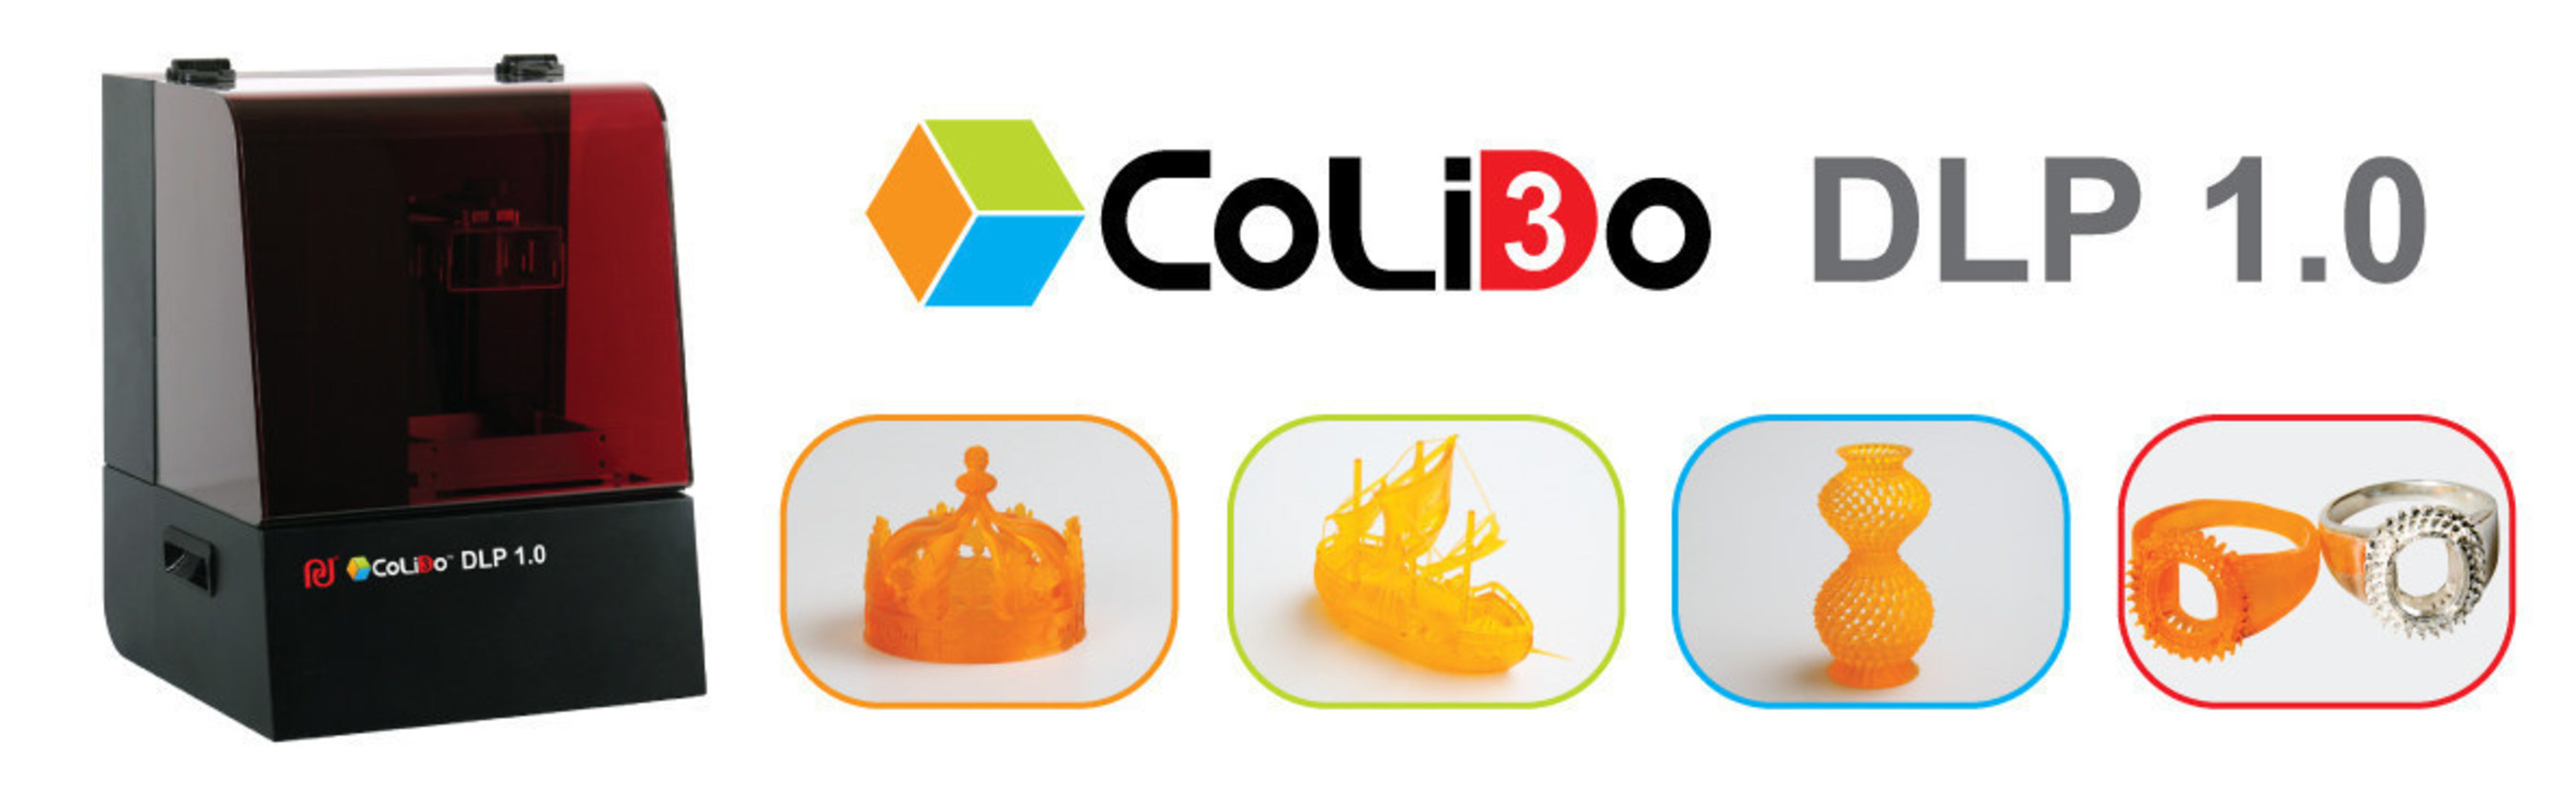 CoLiDo DLP 1.0 3D Printers can build 3D models with up to 0.05 mm layer thickness.